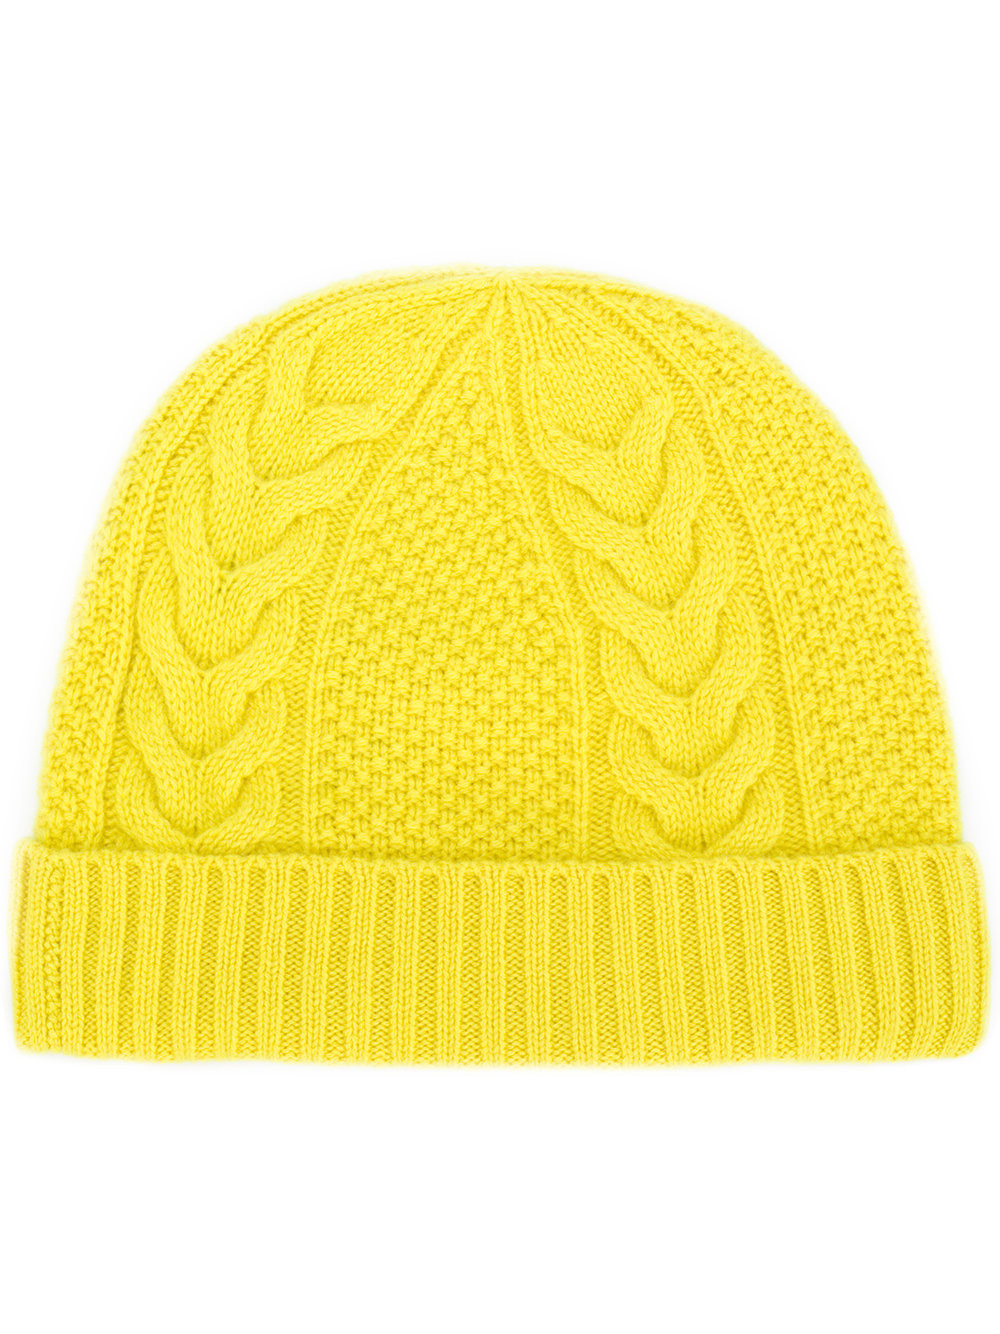 11222d3146f N.Peal cable knit beanie - Yellow   Orange